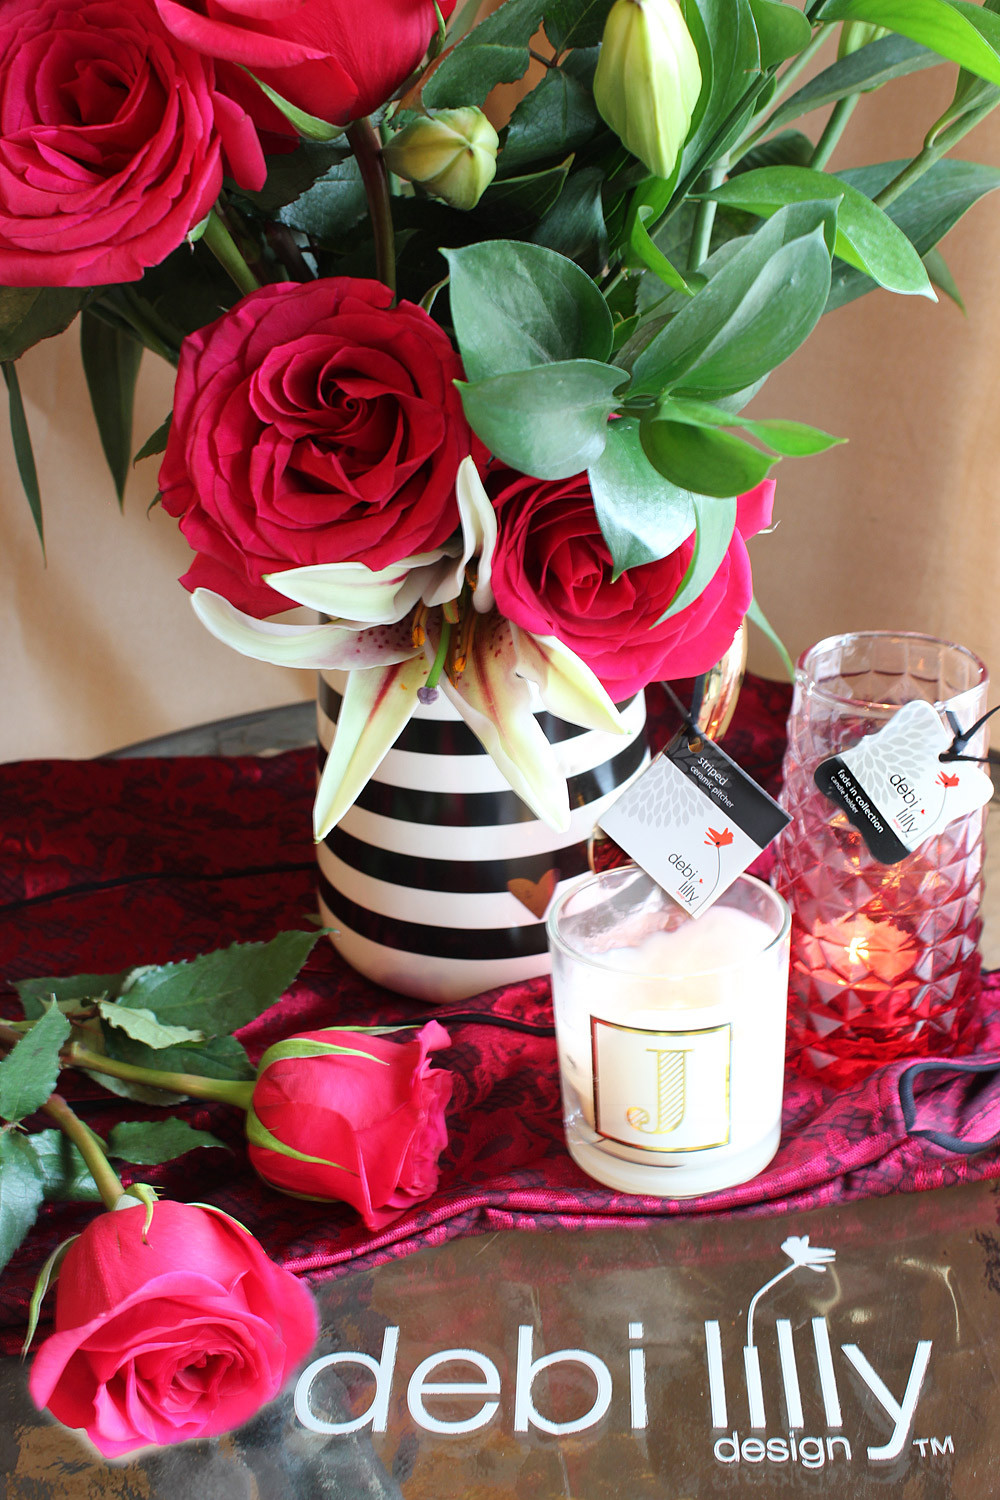 debi lilly vases for sale of four decorating and gift ideas for celebrating valentines day with regard to i also selected the debi lilly design fade in collection candle holder in a blush pink its the perfect size to use as a bud vase down the road